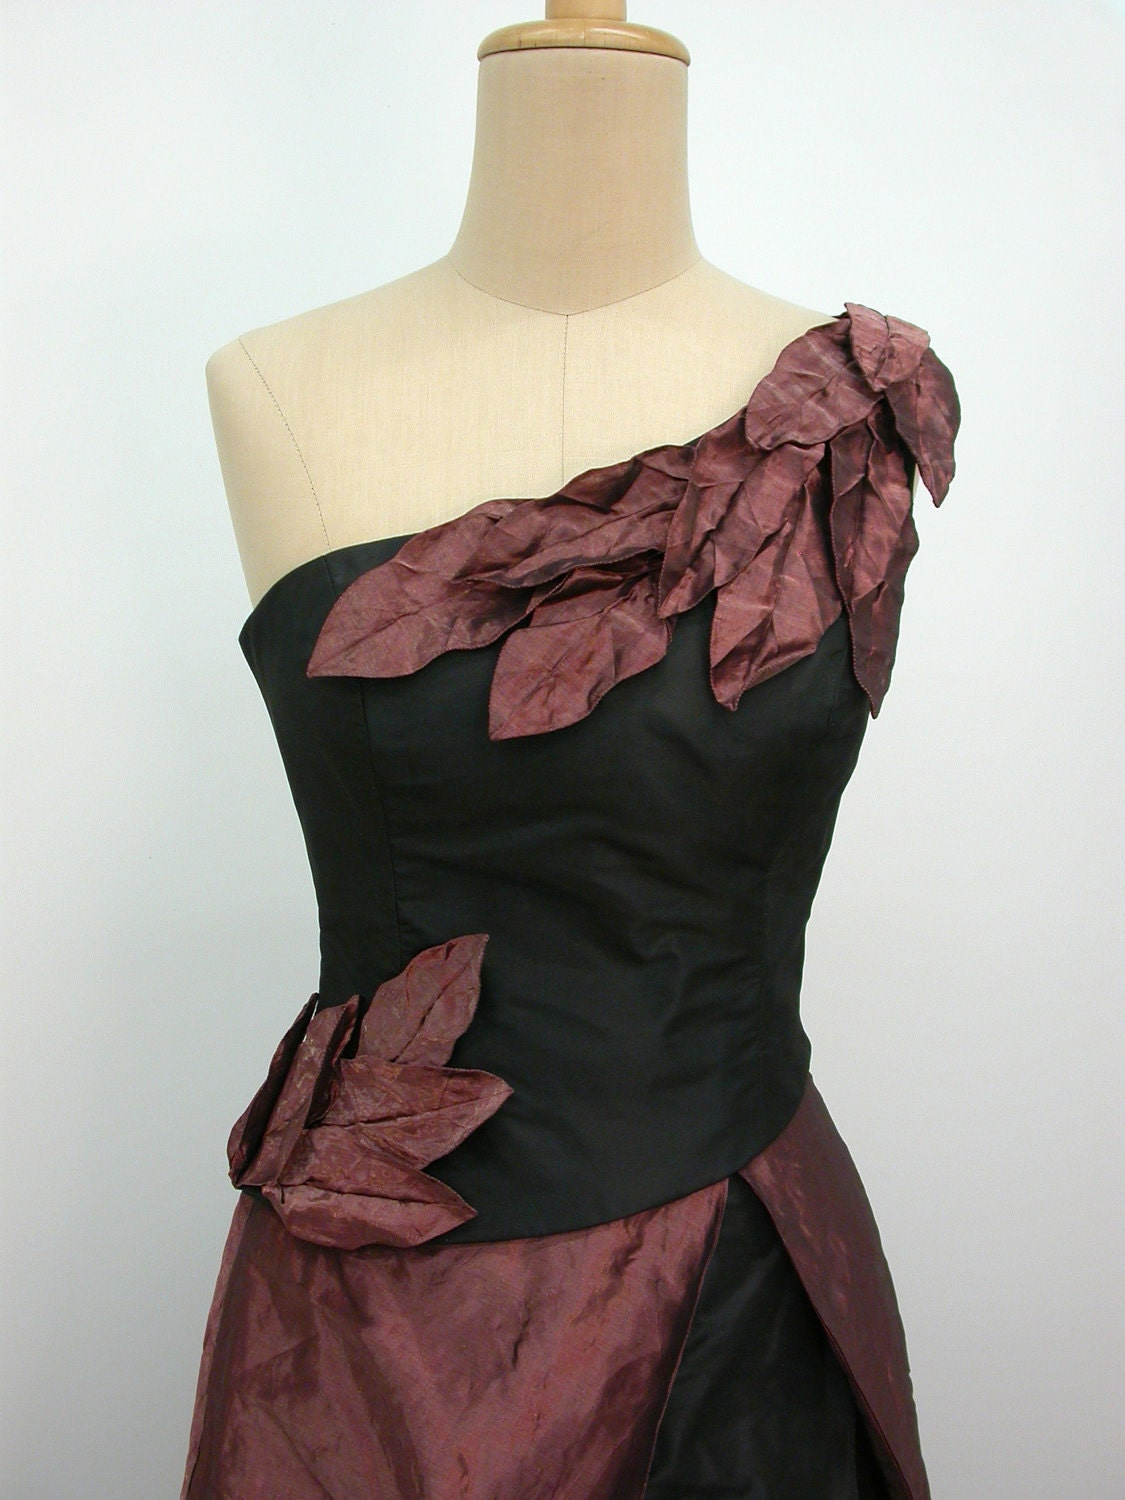 Autumn leaves ball gown - ValenCouture